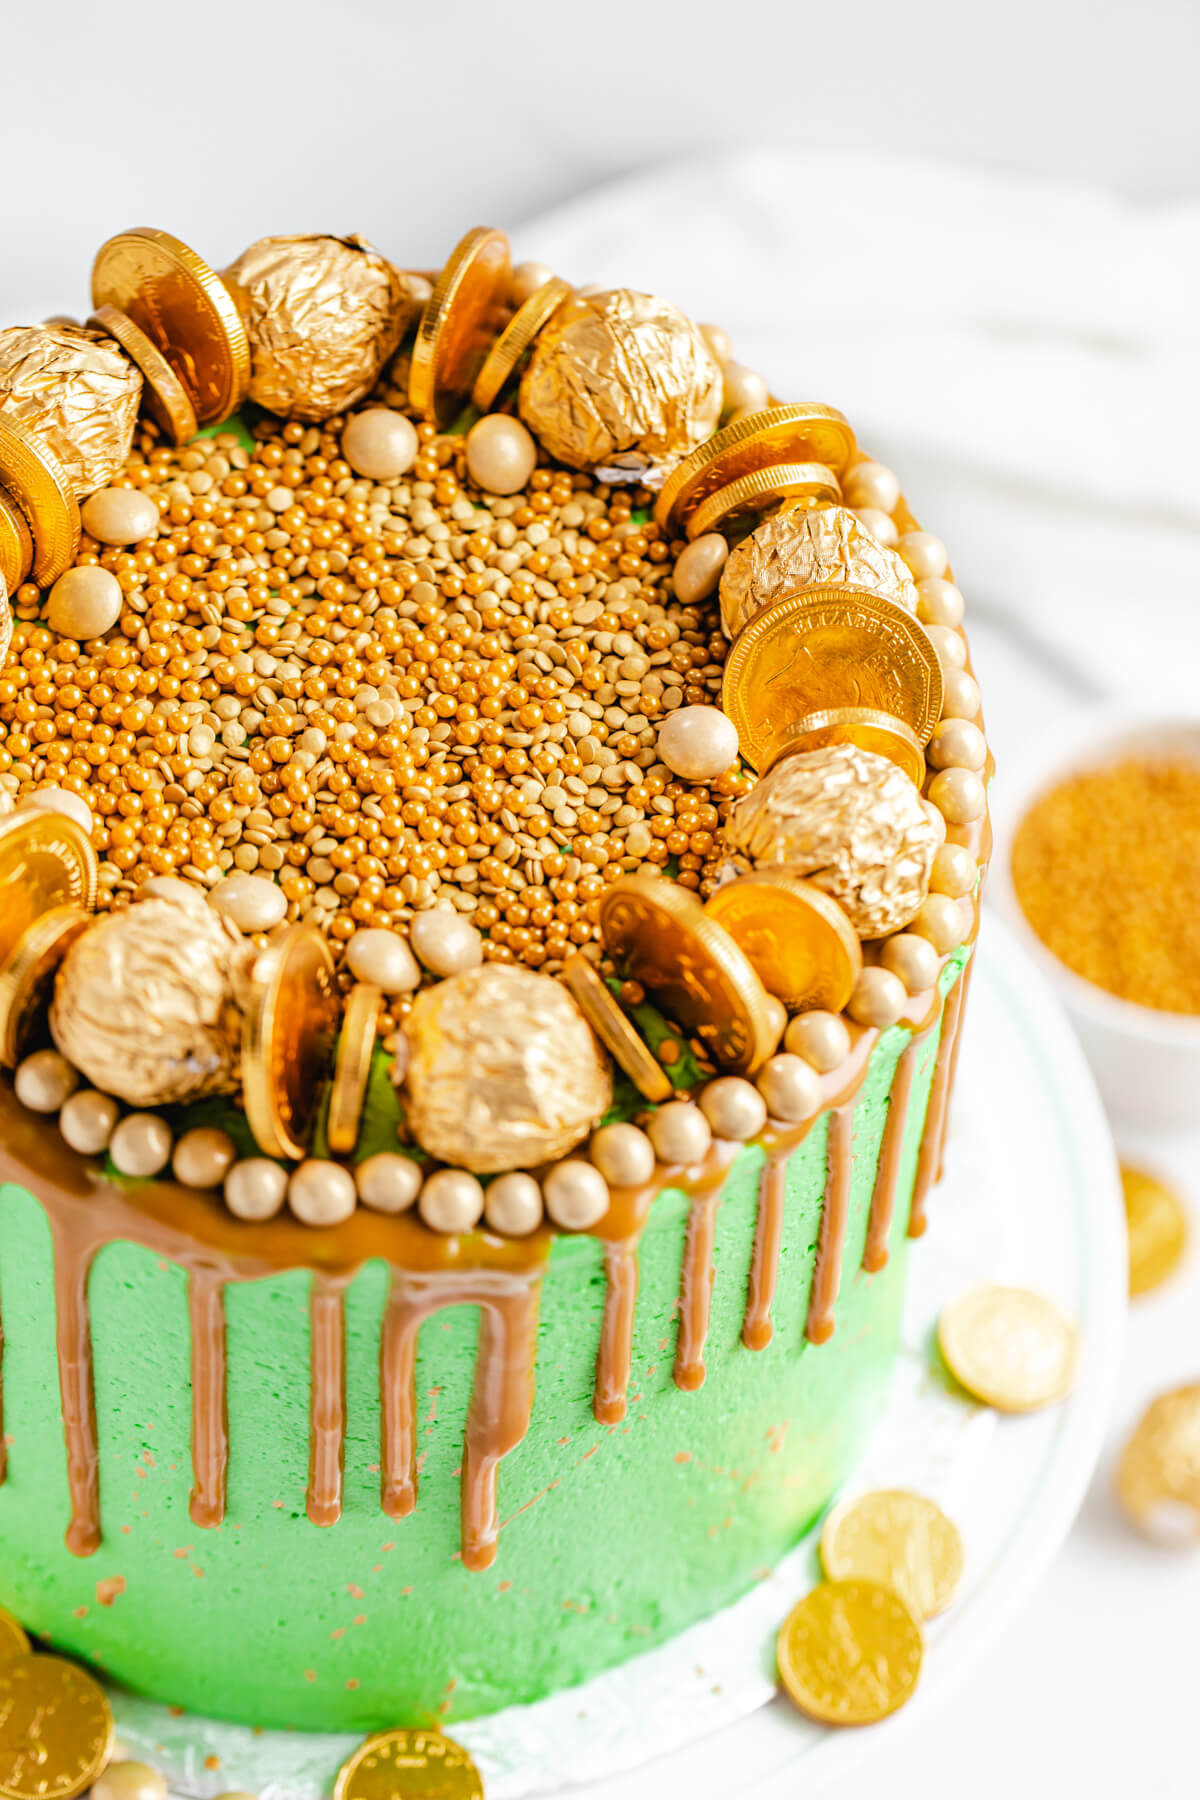 close up of cake with gold sprinkles on top